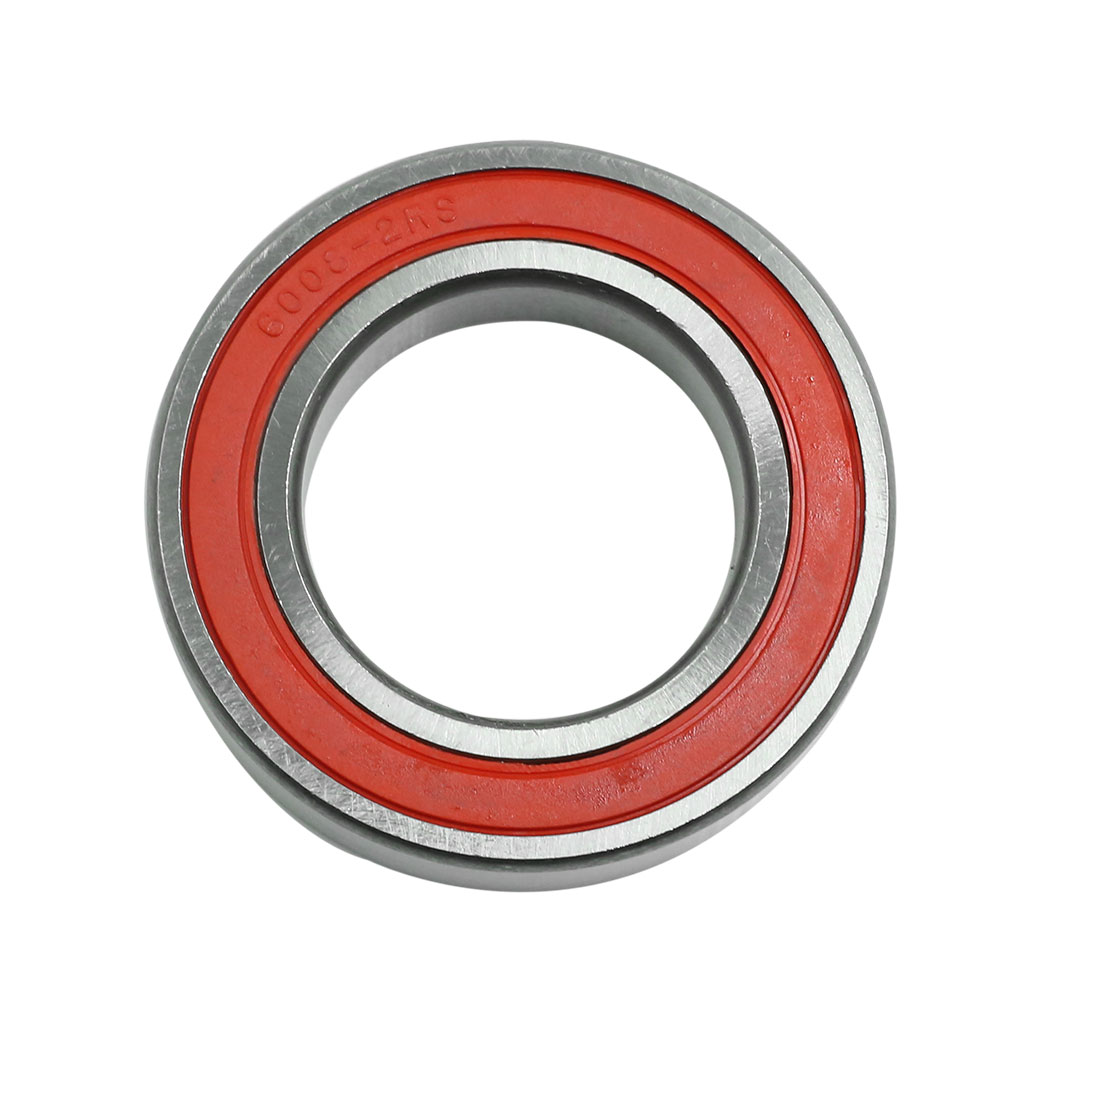 Universal 6008-2RS Deep Groove Double Shielded Ball Bearing 68 x 40 x 15mm - image 2 of 3